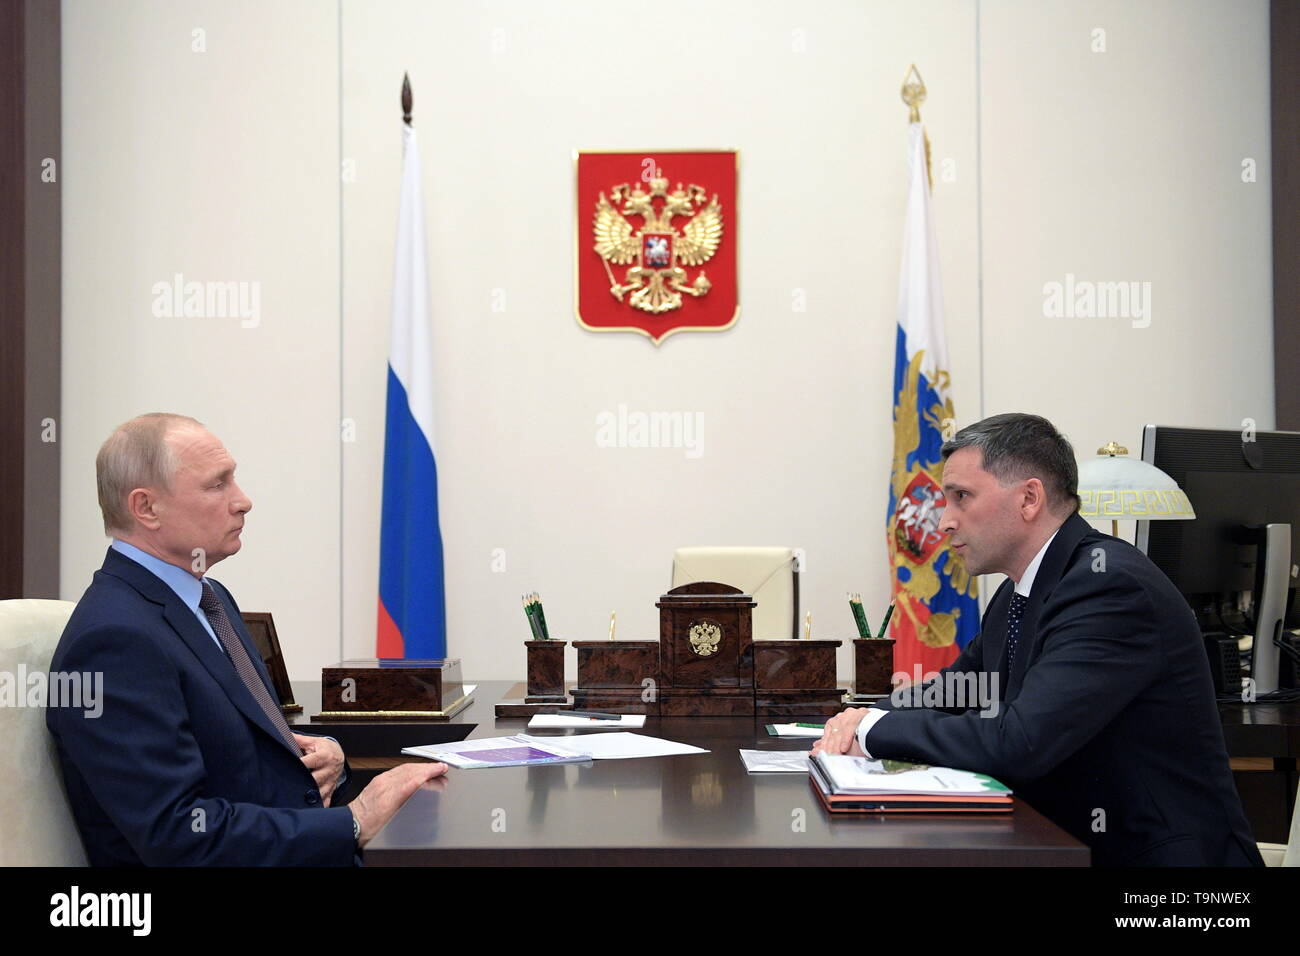 Moscow, Russia. 20th May, 2019. MOSCOW REGION, RUSSIA - MAY 20, 2019: Russia's President Vladimir Putin (L) and Natural Resources and Environment Minister Dmitry Kobylkin during a meeting at Novo-Ogarevo residence. Alexei Druzhinin/Russian Presidential Press and Information Office/TASS Credit: ITAR-TASS News Agency/Alamy Live News Stock Photo